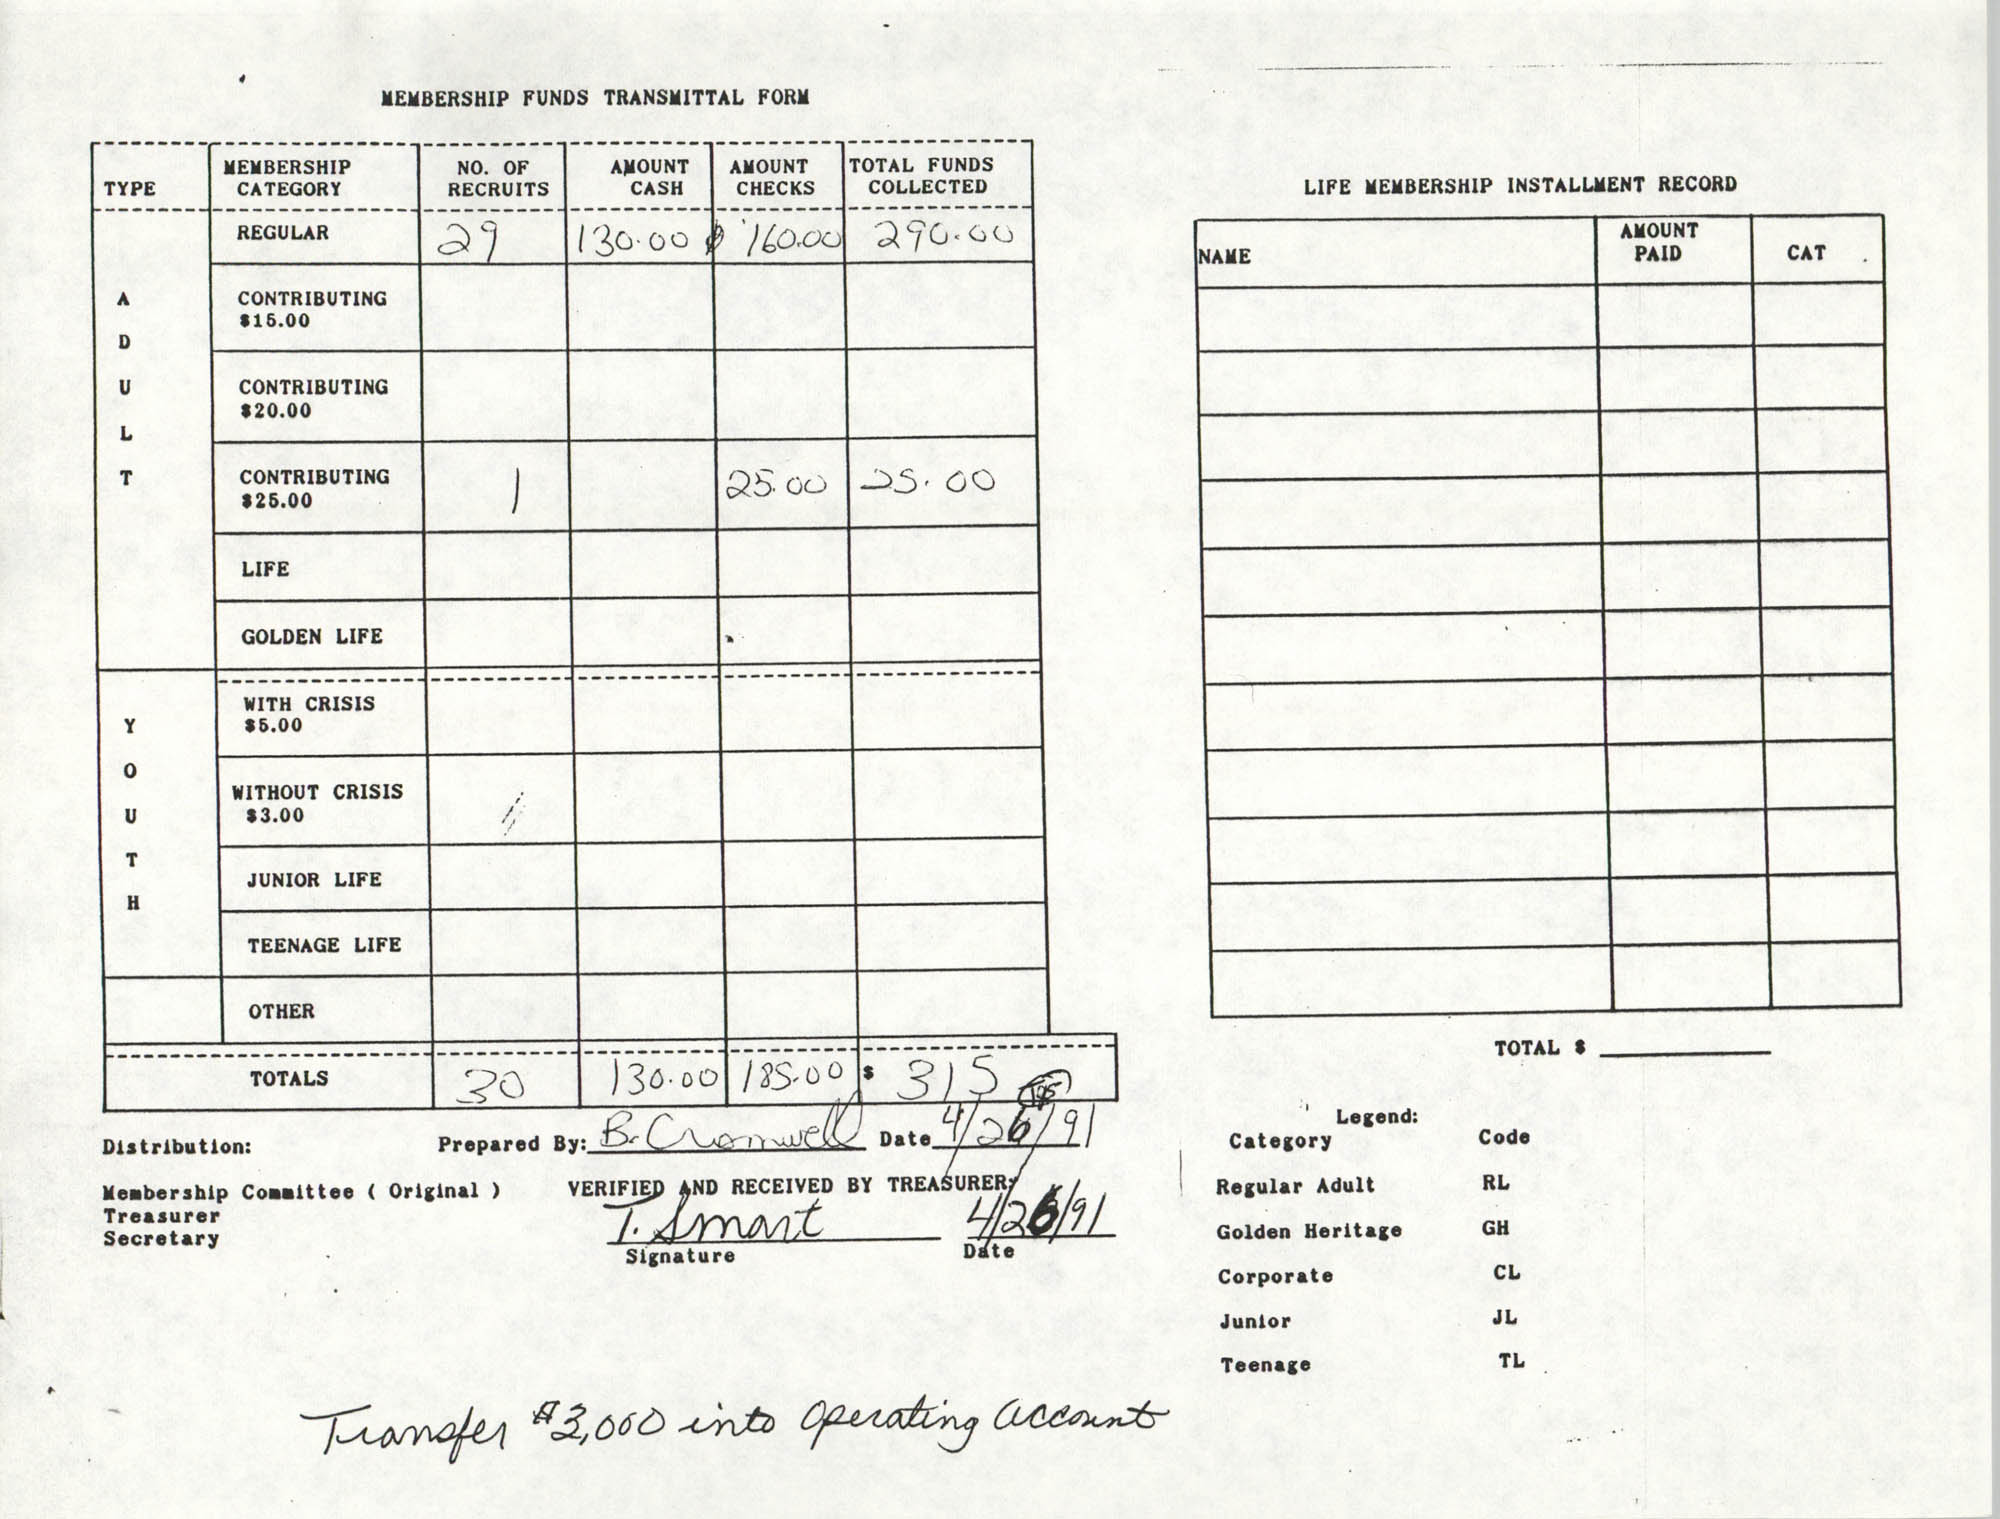 Charleston Branch of the NAACP Funds Transmittal Forms, April 1991, Page 8